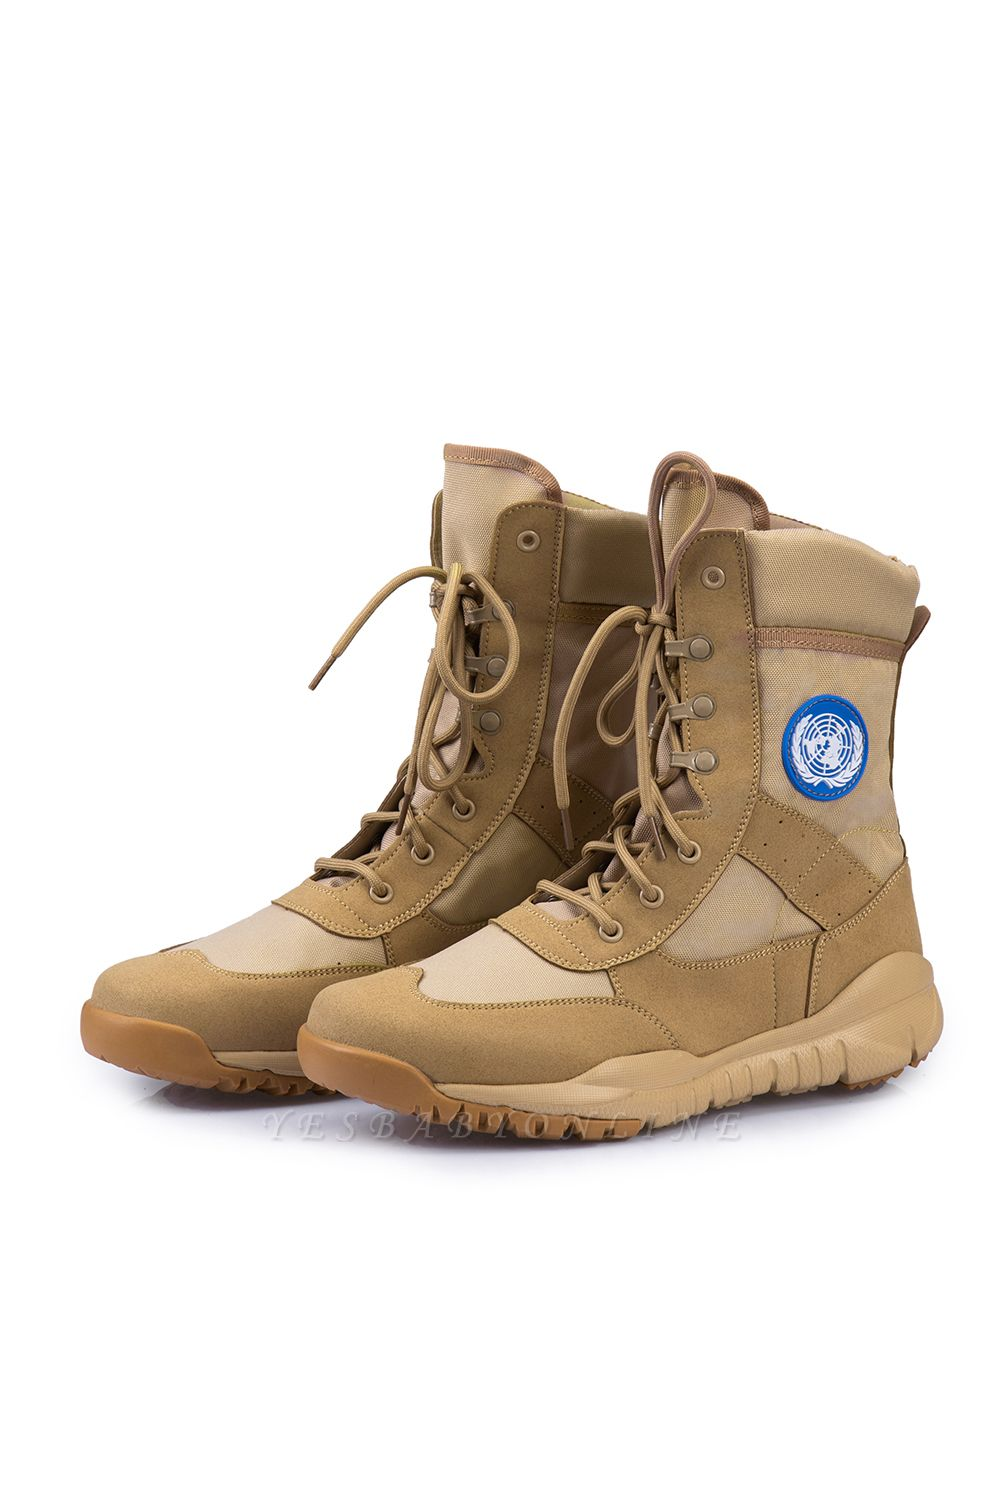 Tactical Boots Lightweight Combat Boots Durable Suede Leather Boots On Sale